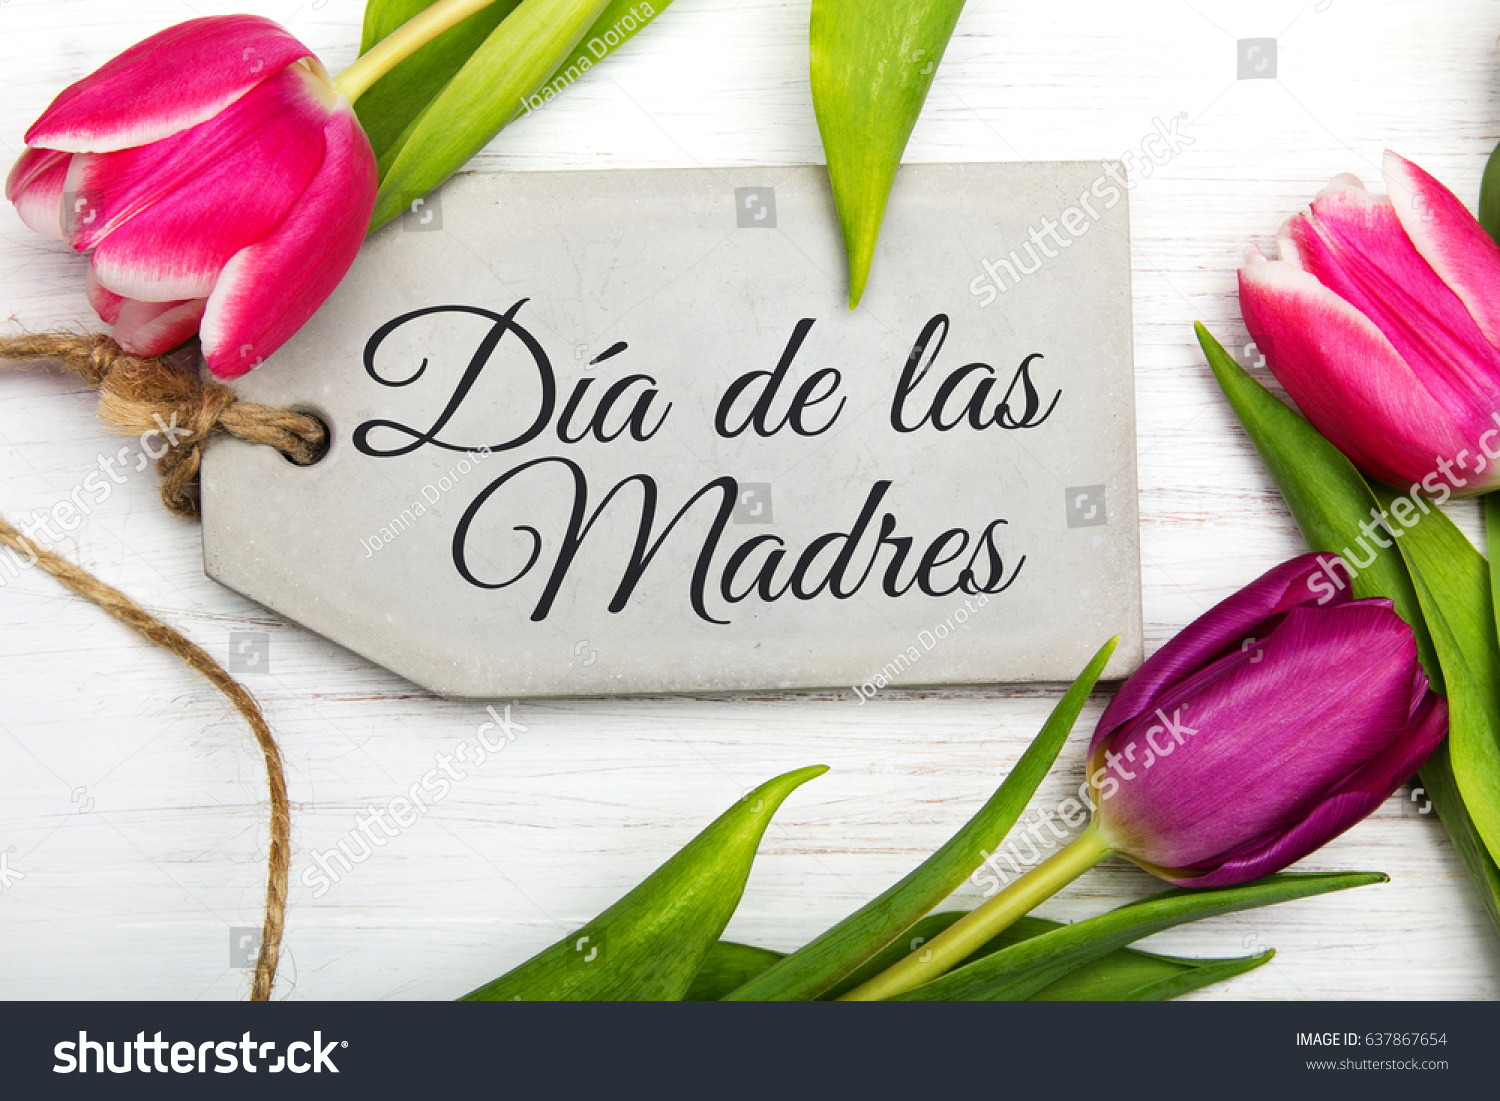 Mothers day card spanish words happy stock photo edit now mothers day card with spanish words happy mothers day and blue flowers frame on m4hsunfo